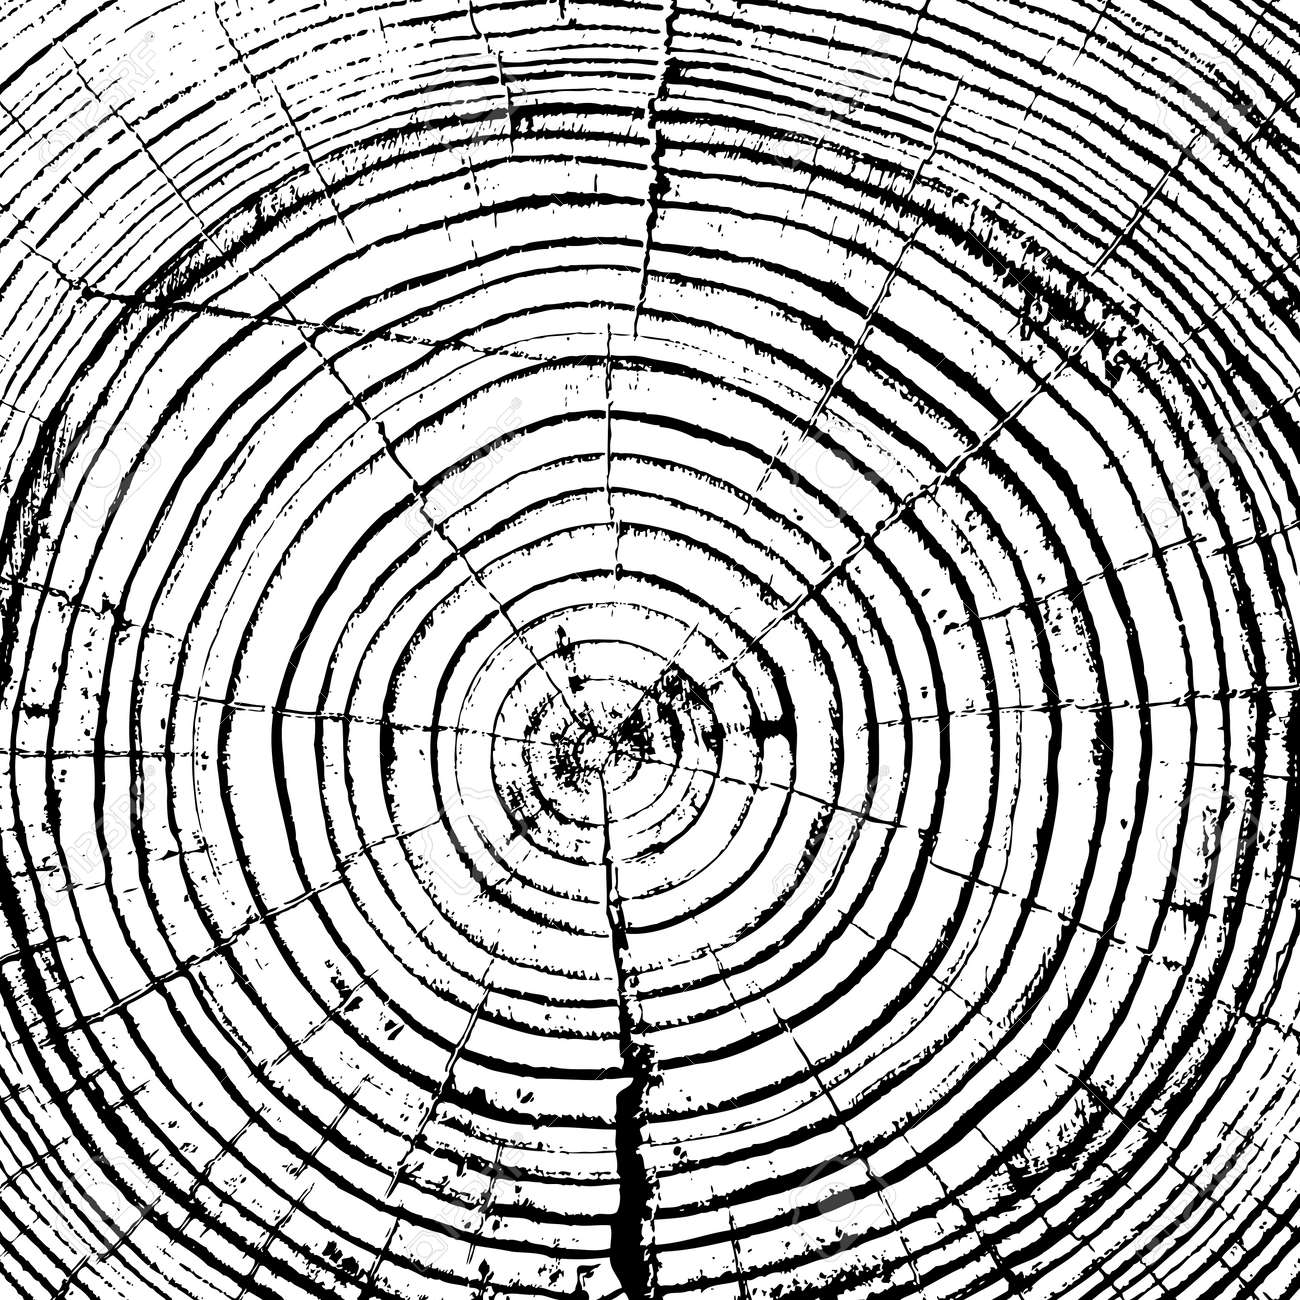 Tree rings saw cut tree trunk background. Vector illustration. - 35272773